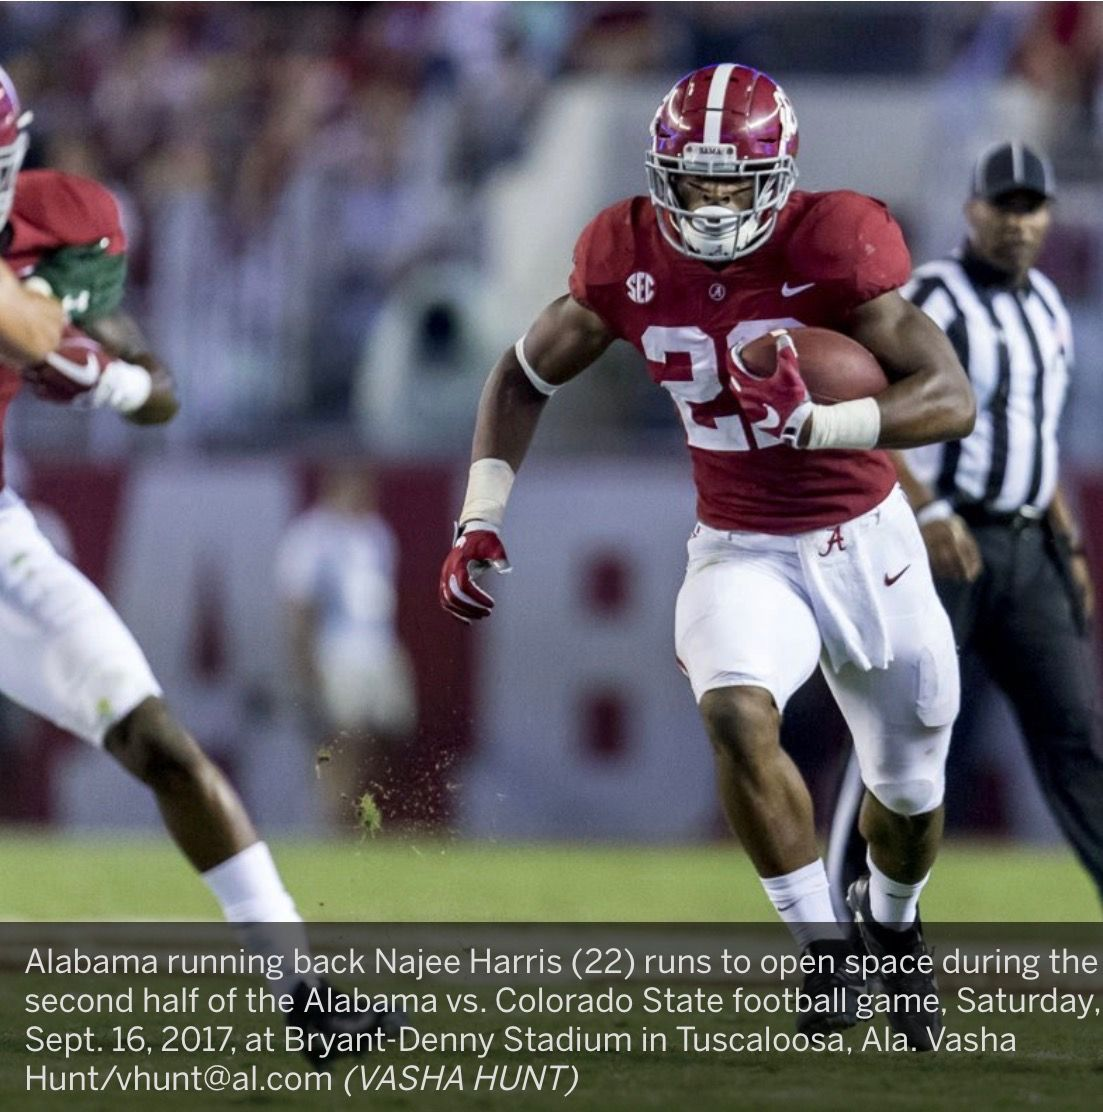 Alabama Running Back Najee Harris 22 Runs To Open Space During The Second Half Of The Alabama Vs Colorado State Football Game Alabama Alabama Vs Tuscaloosa